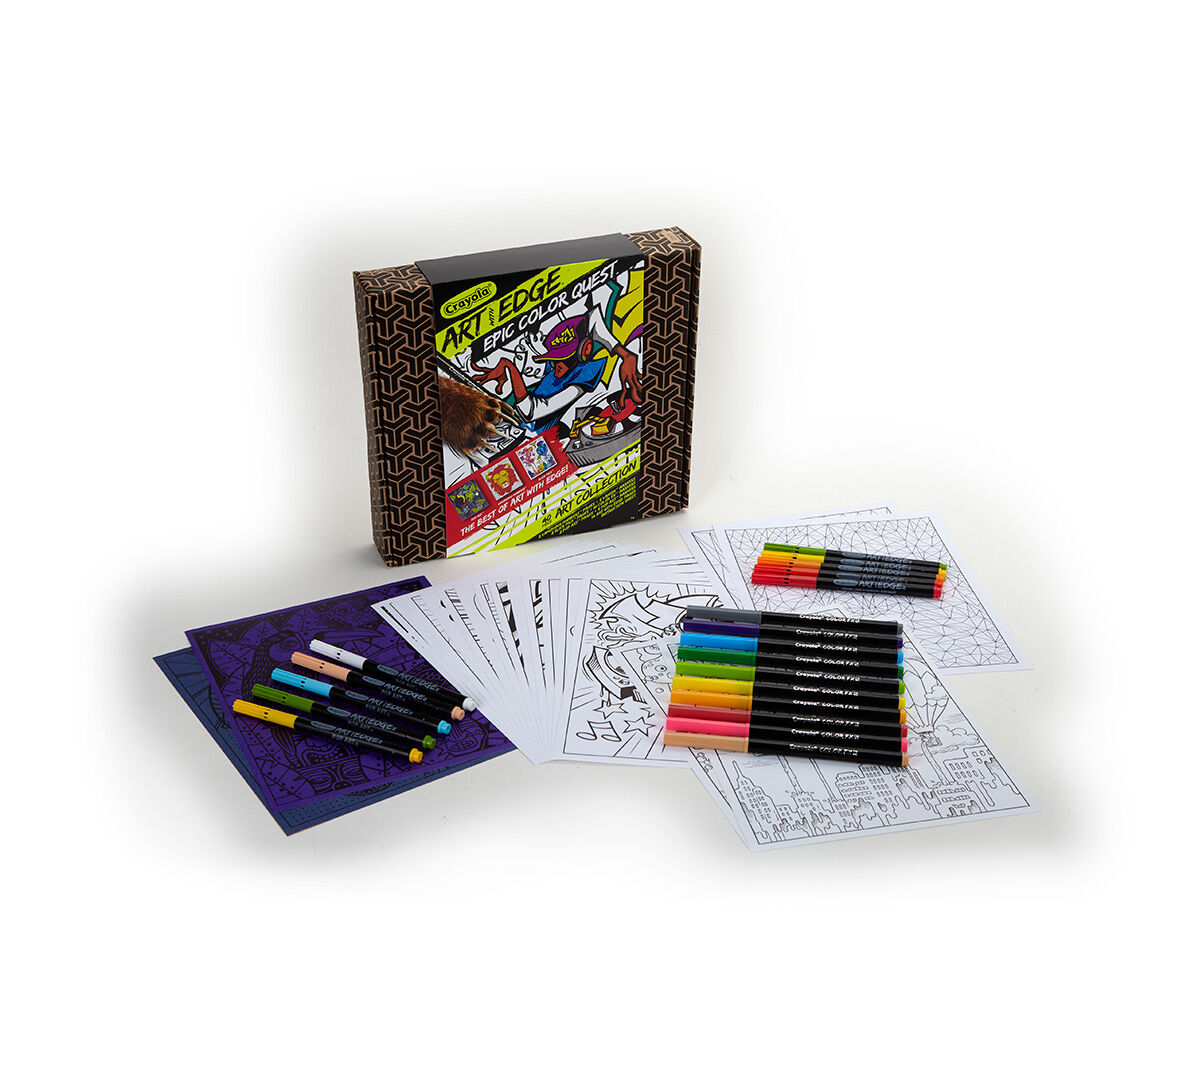 "<style type=""text/css"">.chokeHaz{    margin-top:0px !important;}</style><p>Featuring coloring pages and markers from a variety of Crayola Art with Edge collections, Epic Color Quest lets you sample four different coloring styles from one convenient box. This set also contains traditional Art with Edge line art pages that can be colored with any coloring tools.</p>"